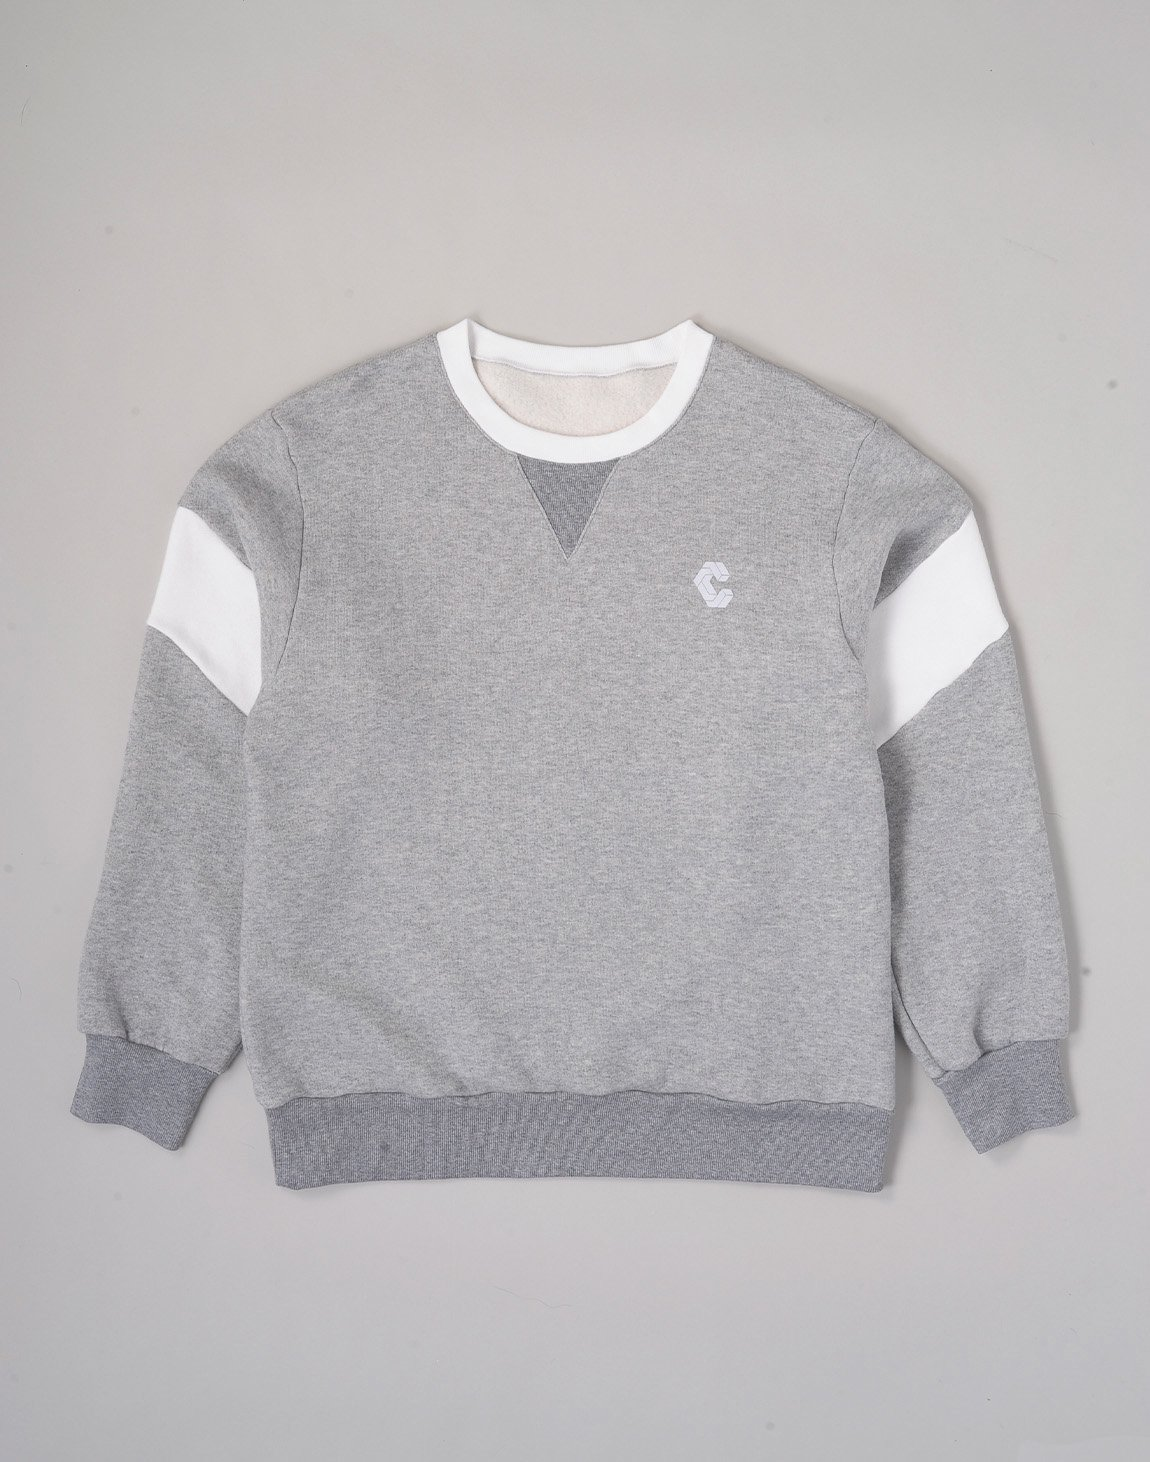 <img class='new_mark_img1' src='https://img.shop-pro.jp/img/new/icons1.gif' style='border:none;display:inline;margin:0px;padding:0px;width:auto;' />CRONOS LOGO SOFT FLEECE SWEATSHIRT【GRAY】